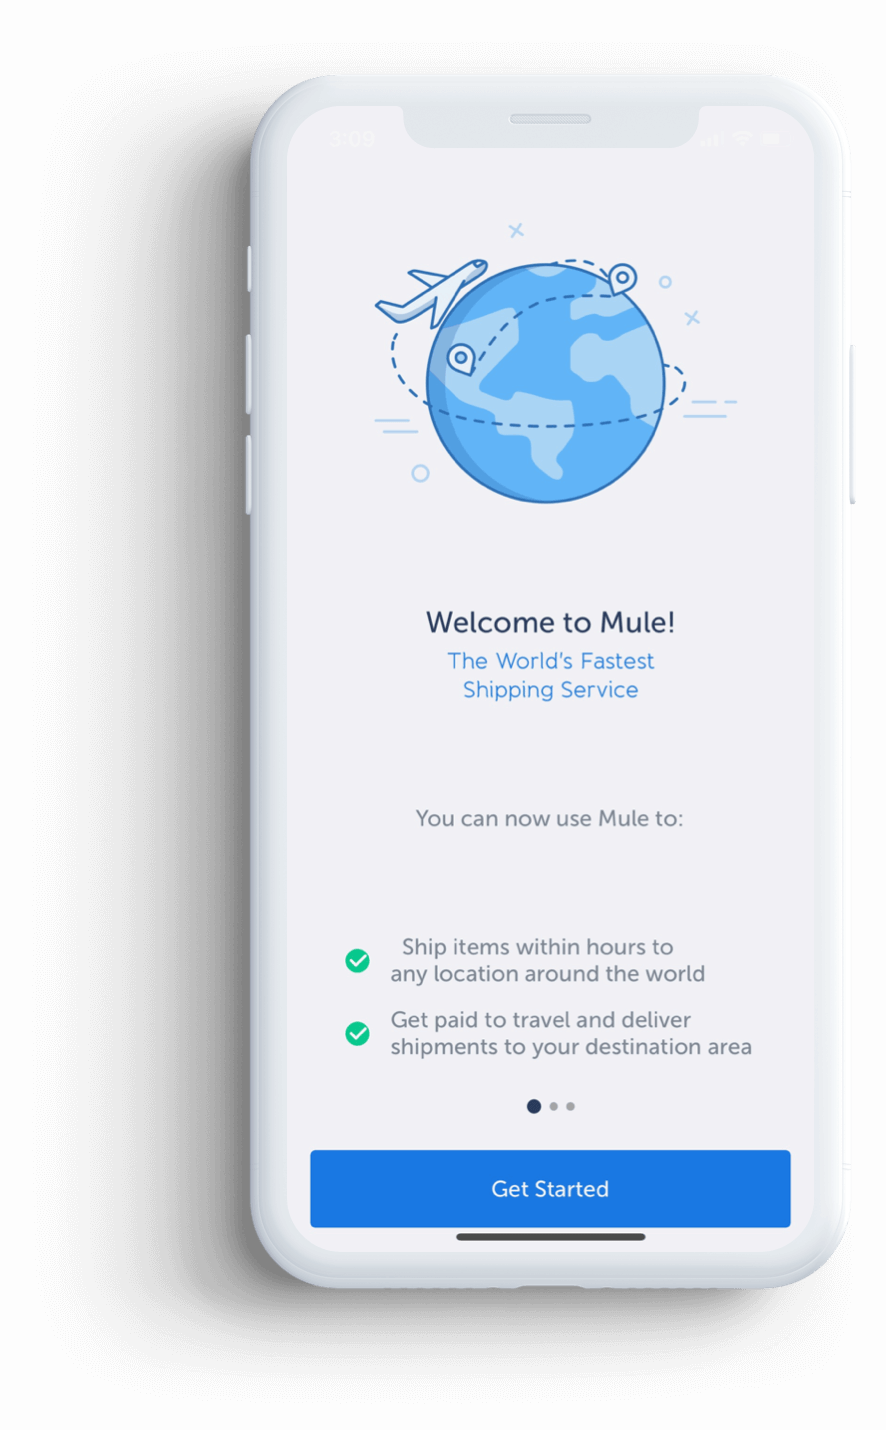 Mule, the world's fastest shipping service. mockup image